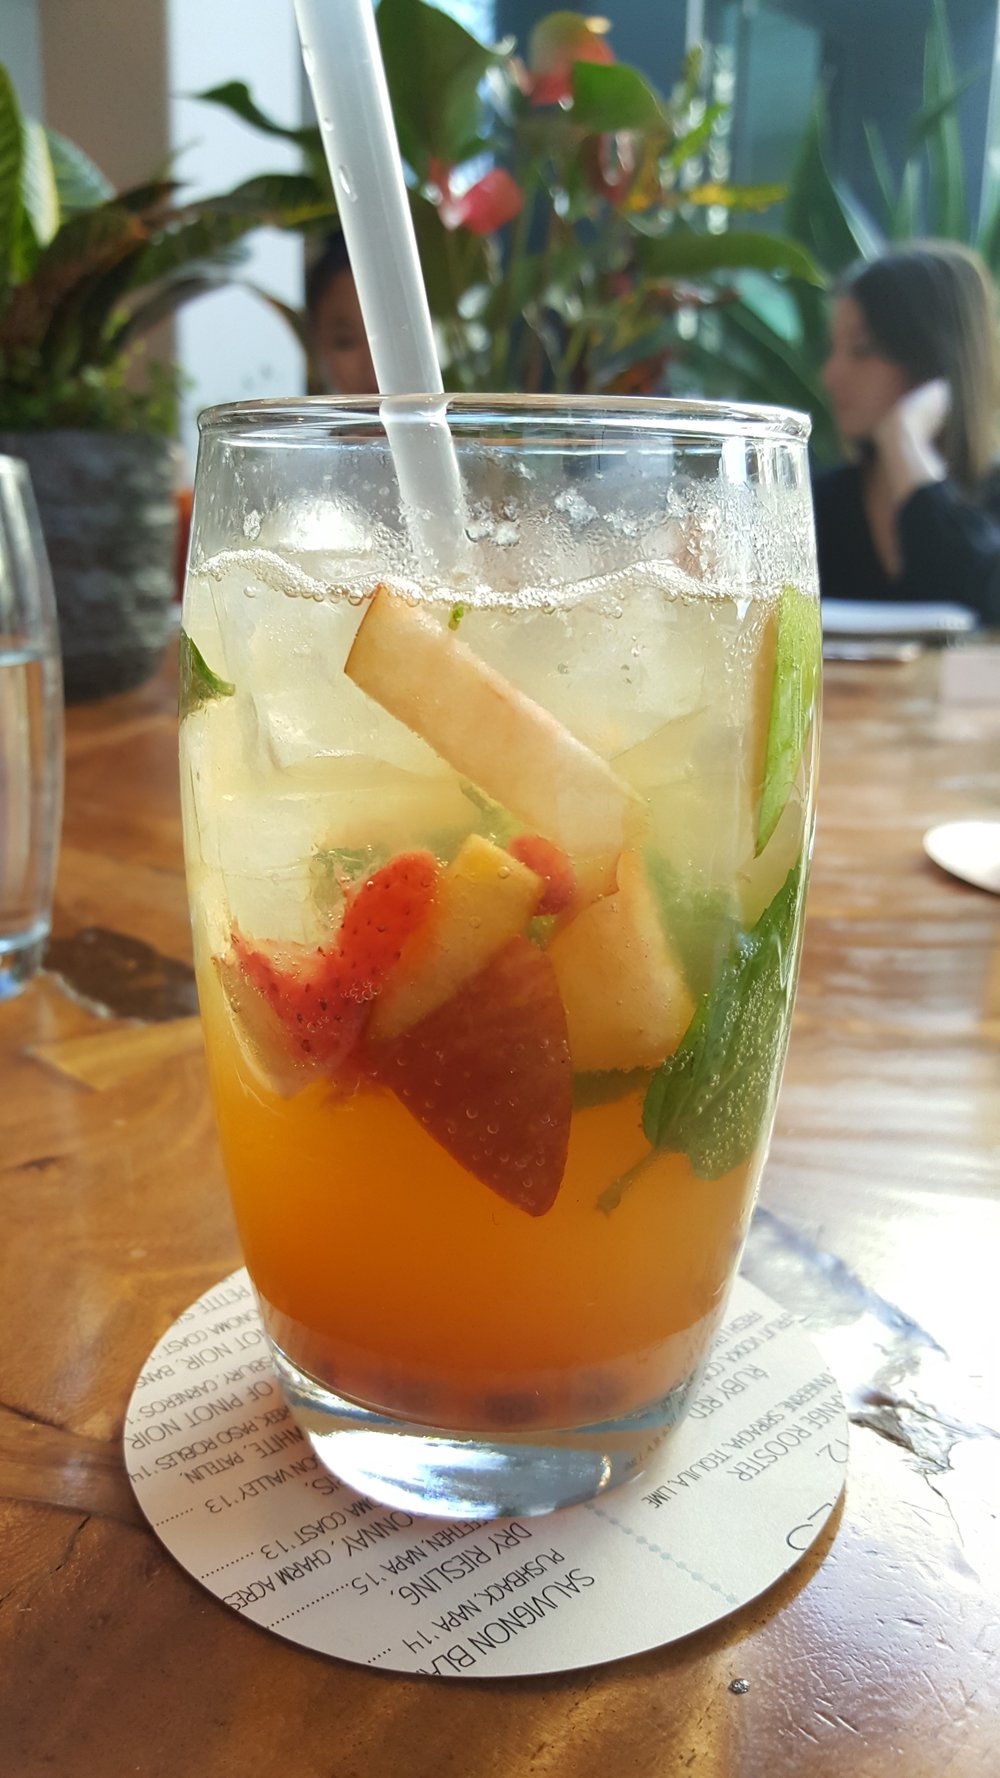 Bluestem Smash (St. German, Vodka or Whiskey, Muddled Seasonal Fruit, Mint, Lime & Sparkling Wine)